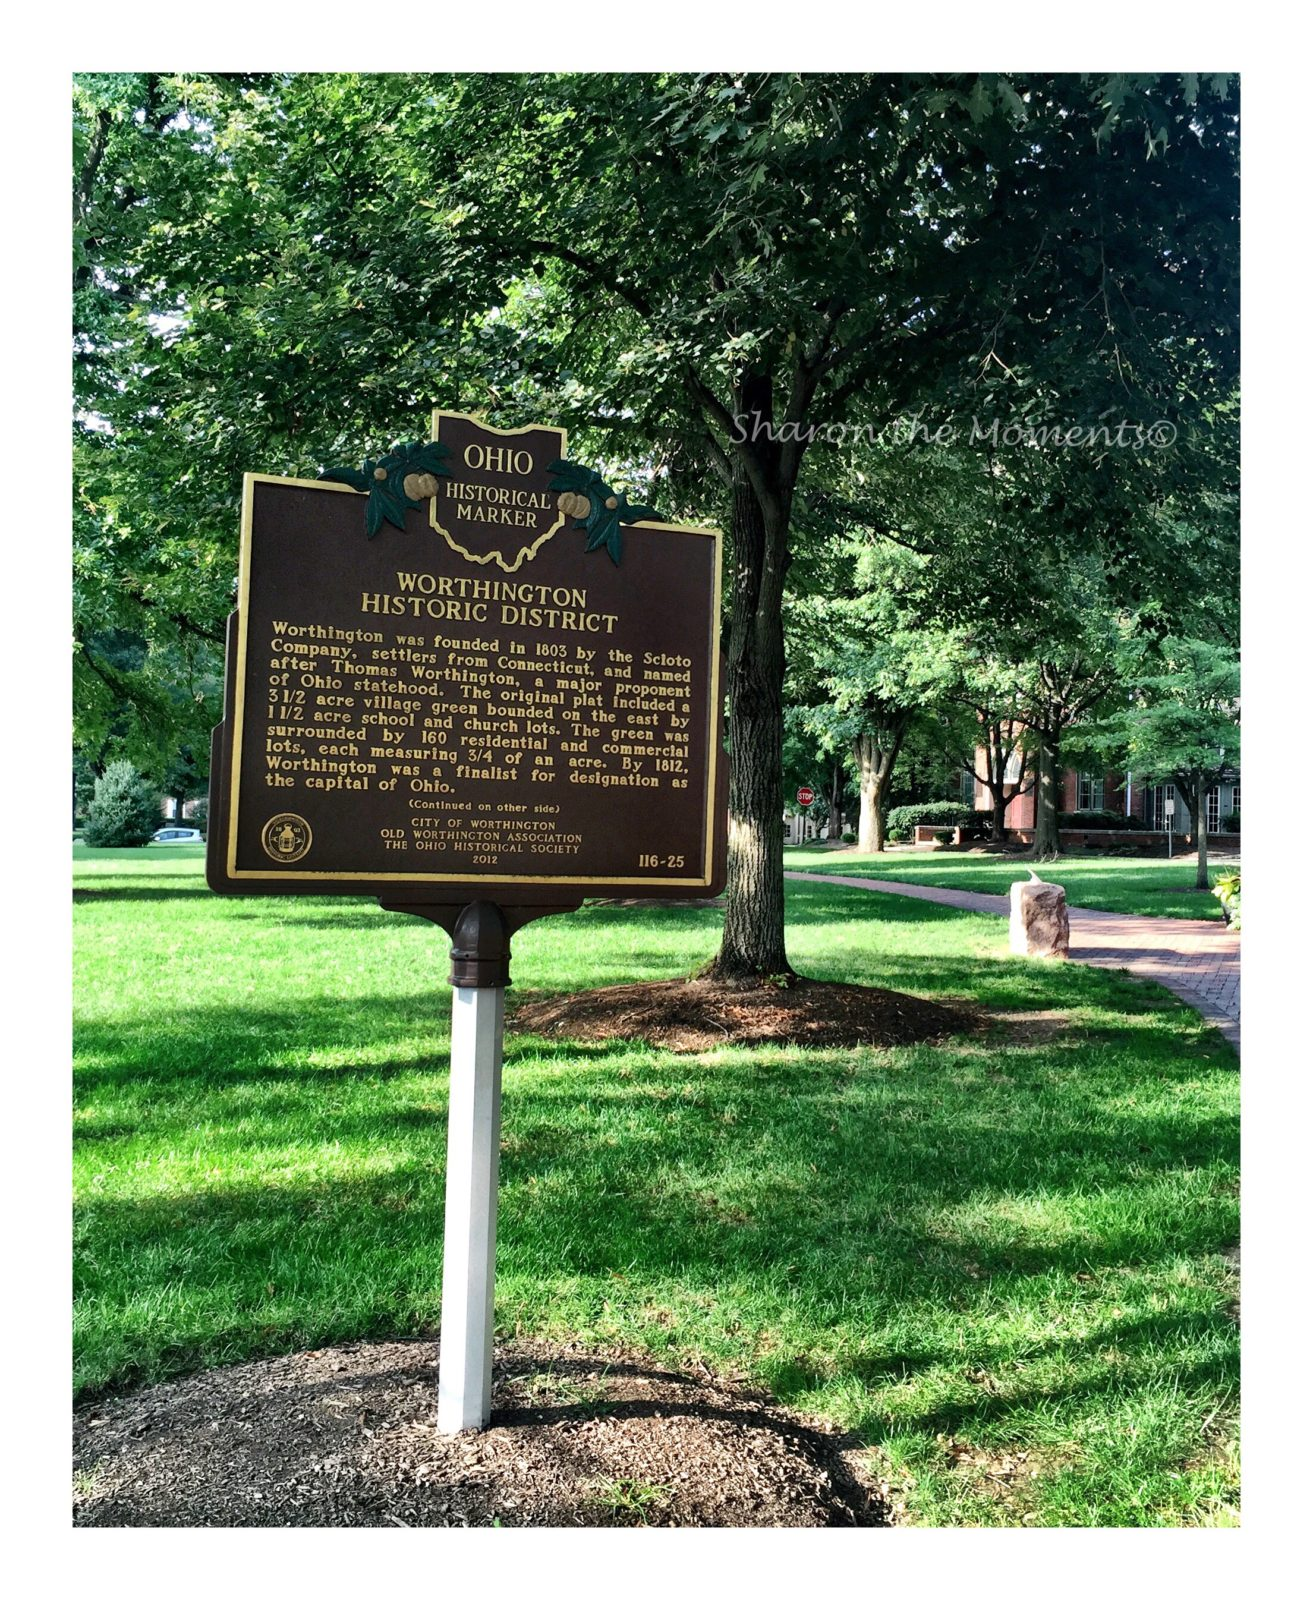 Remarkable Ohio ... Ohio Historical Marker #116-25 Worthington Historic District || Sharon the Moments Blog